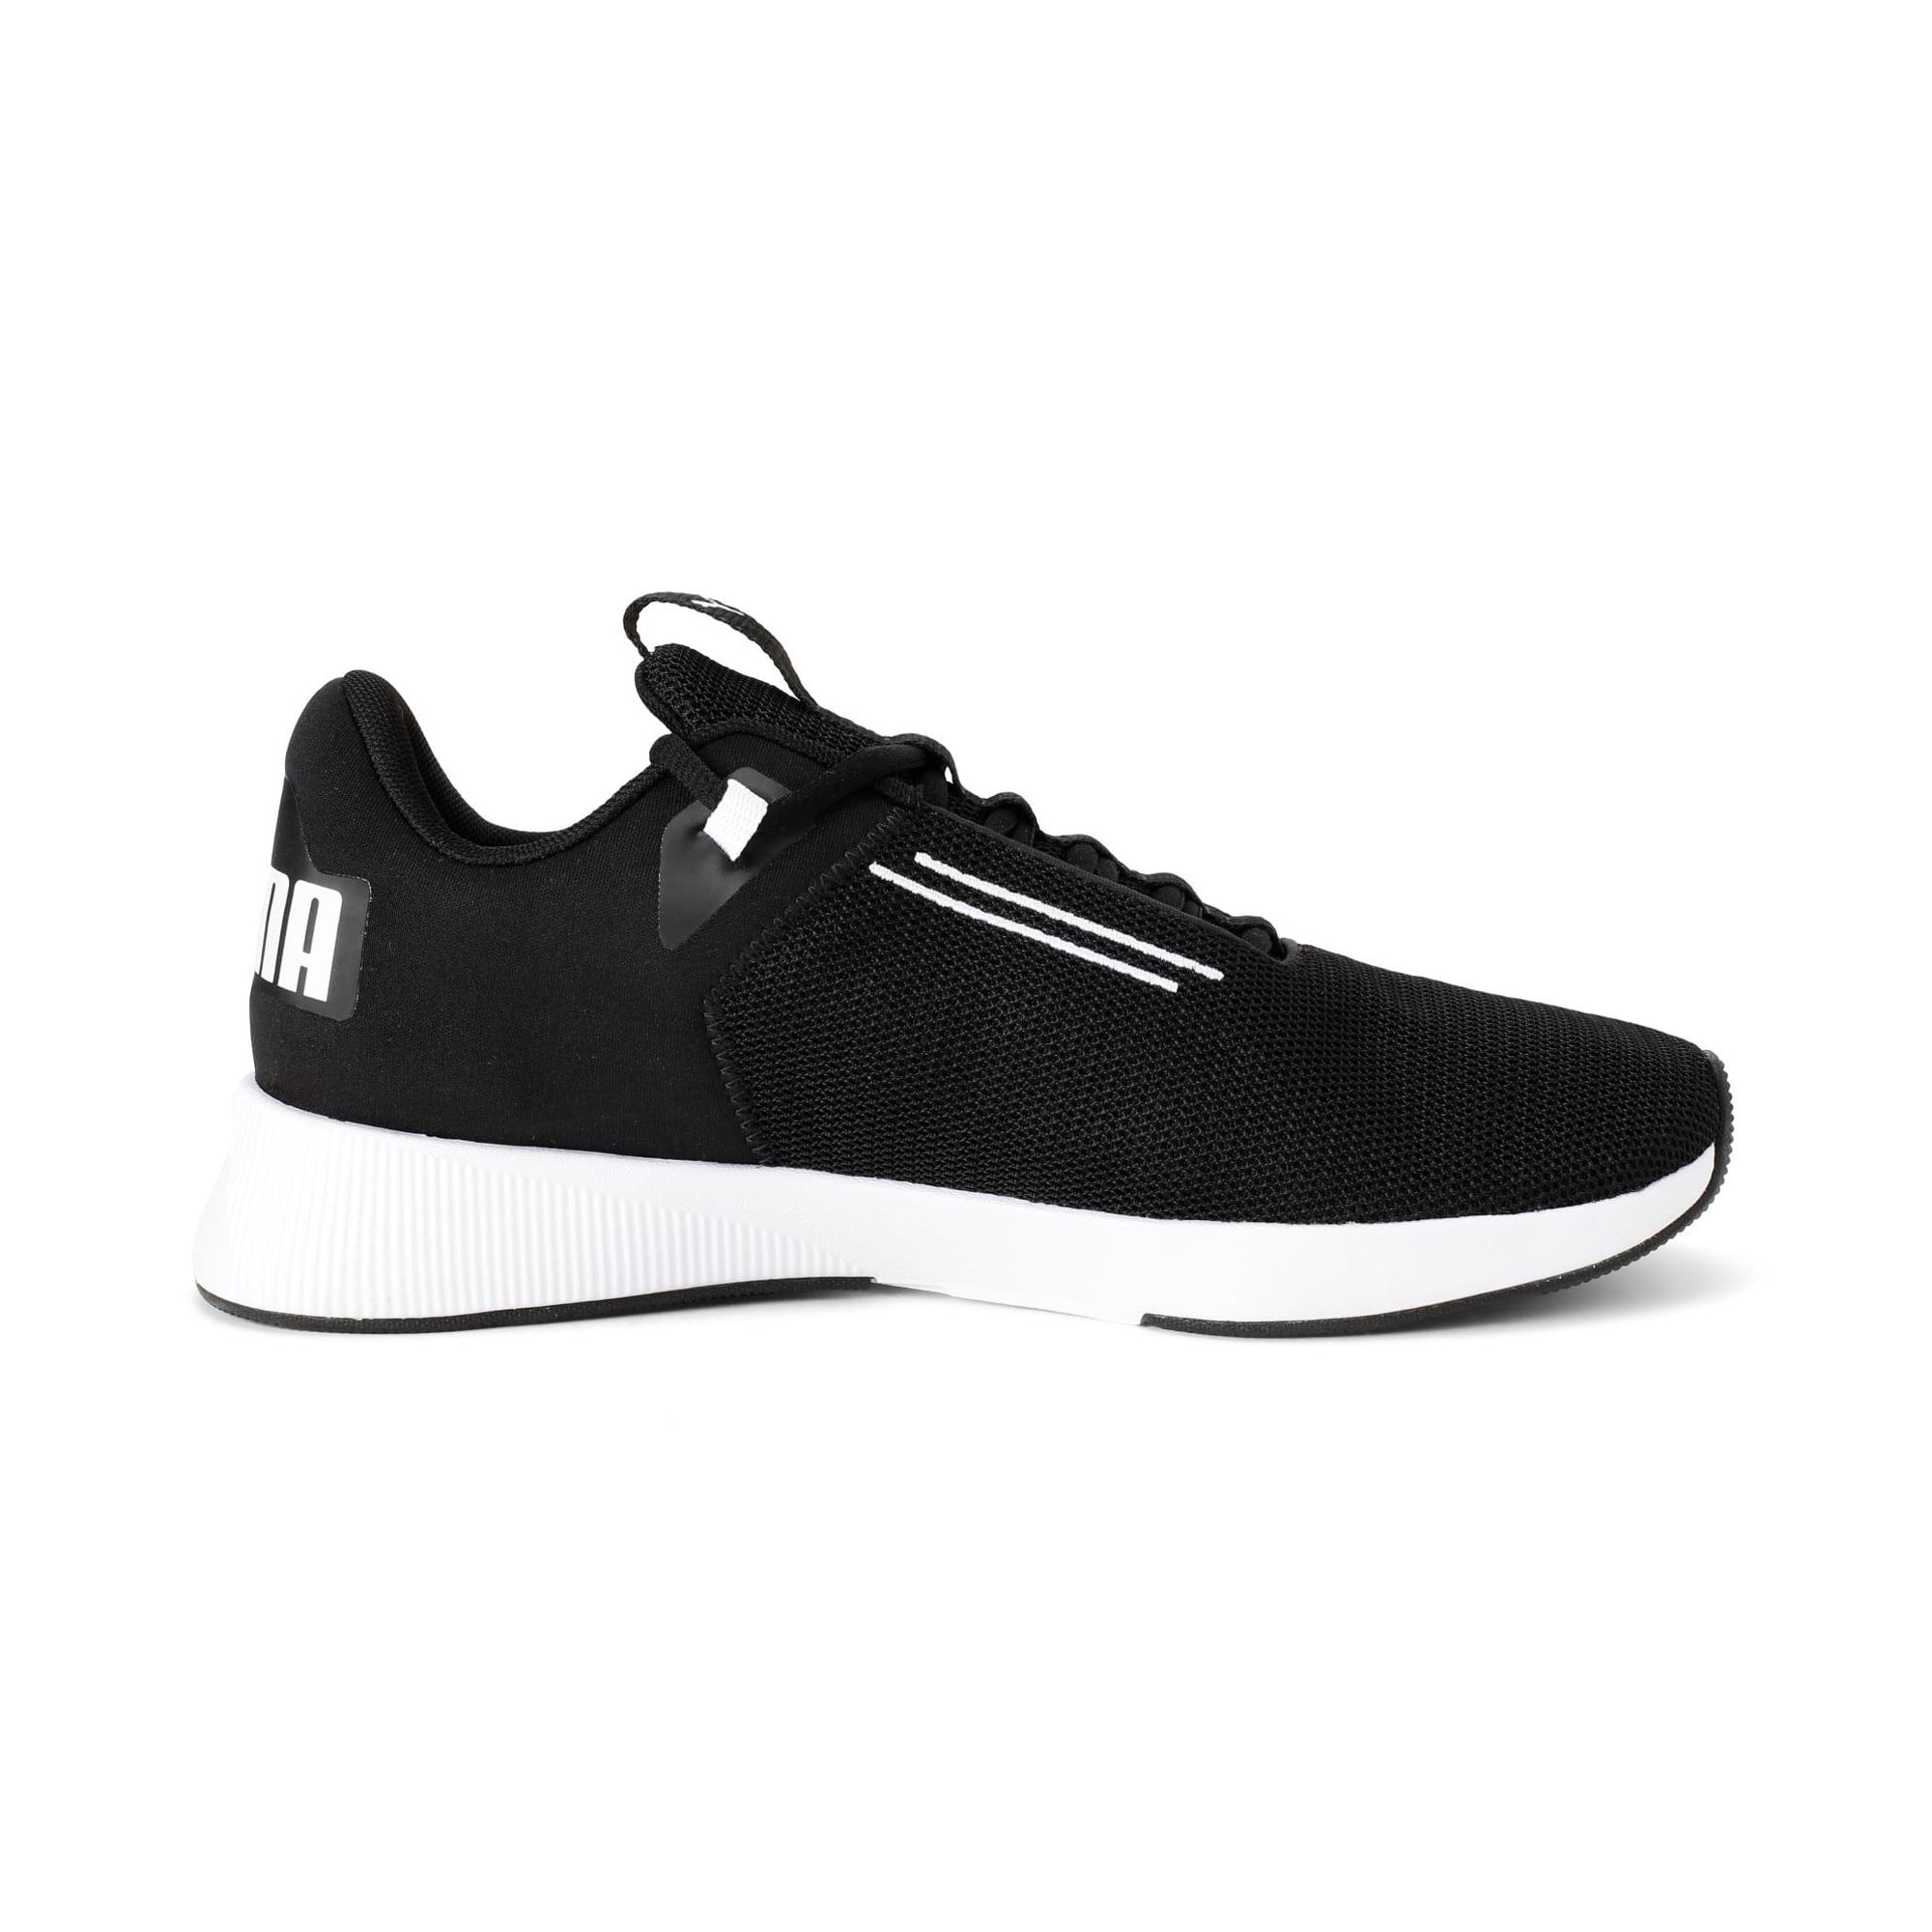 Thumbnail 5 of Flyer Modern Running Shoes, Puma Black-Puma White, medium-IND